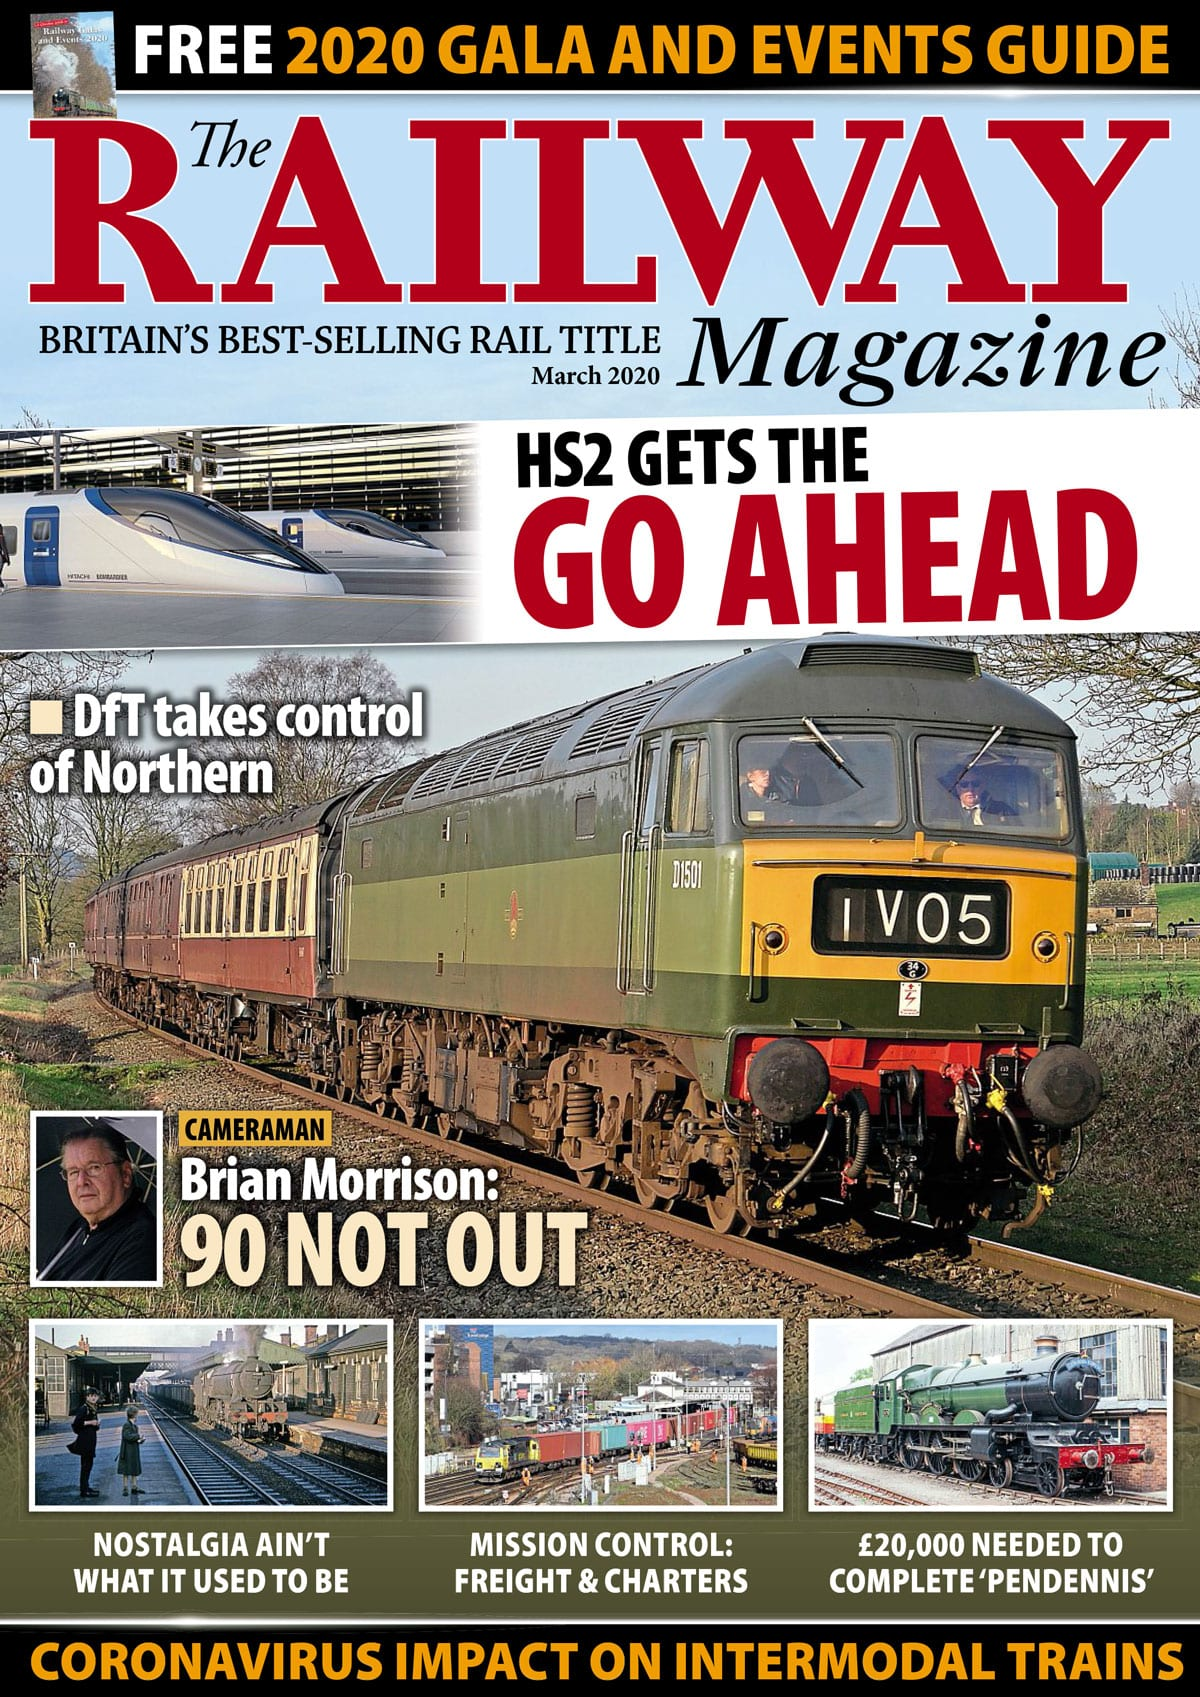 The Railway Magazine March cover